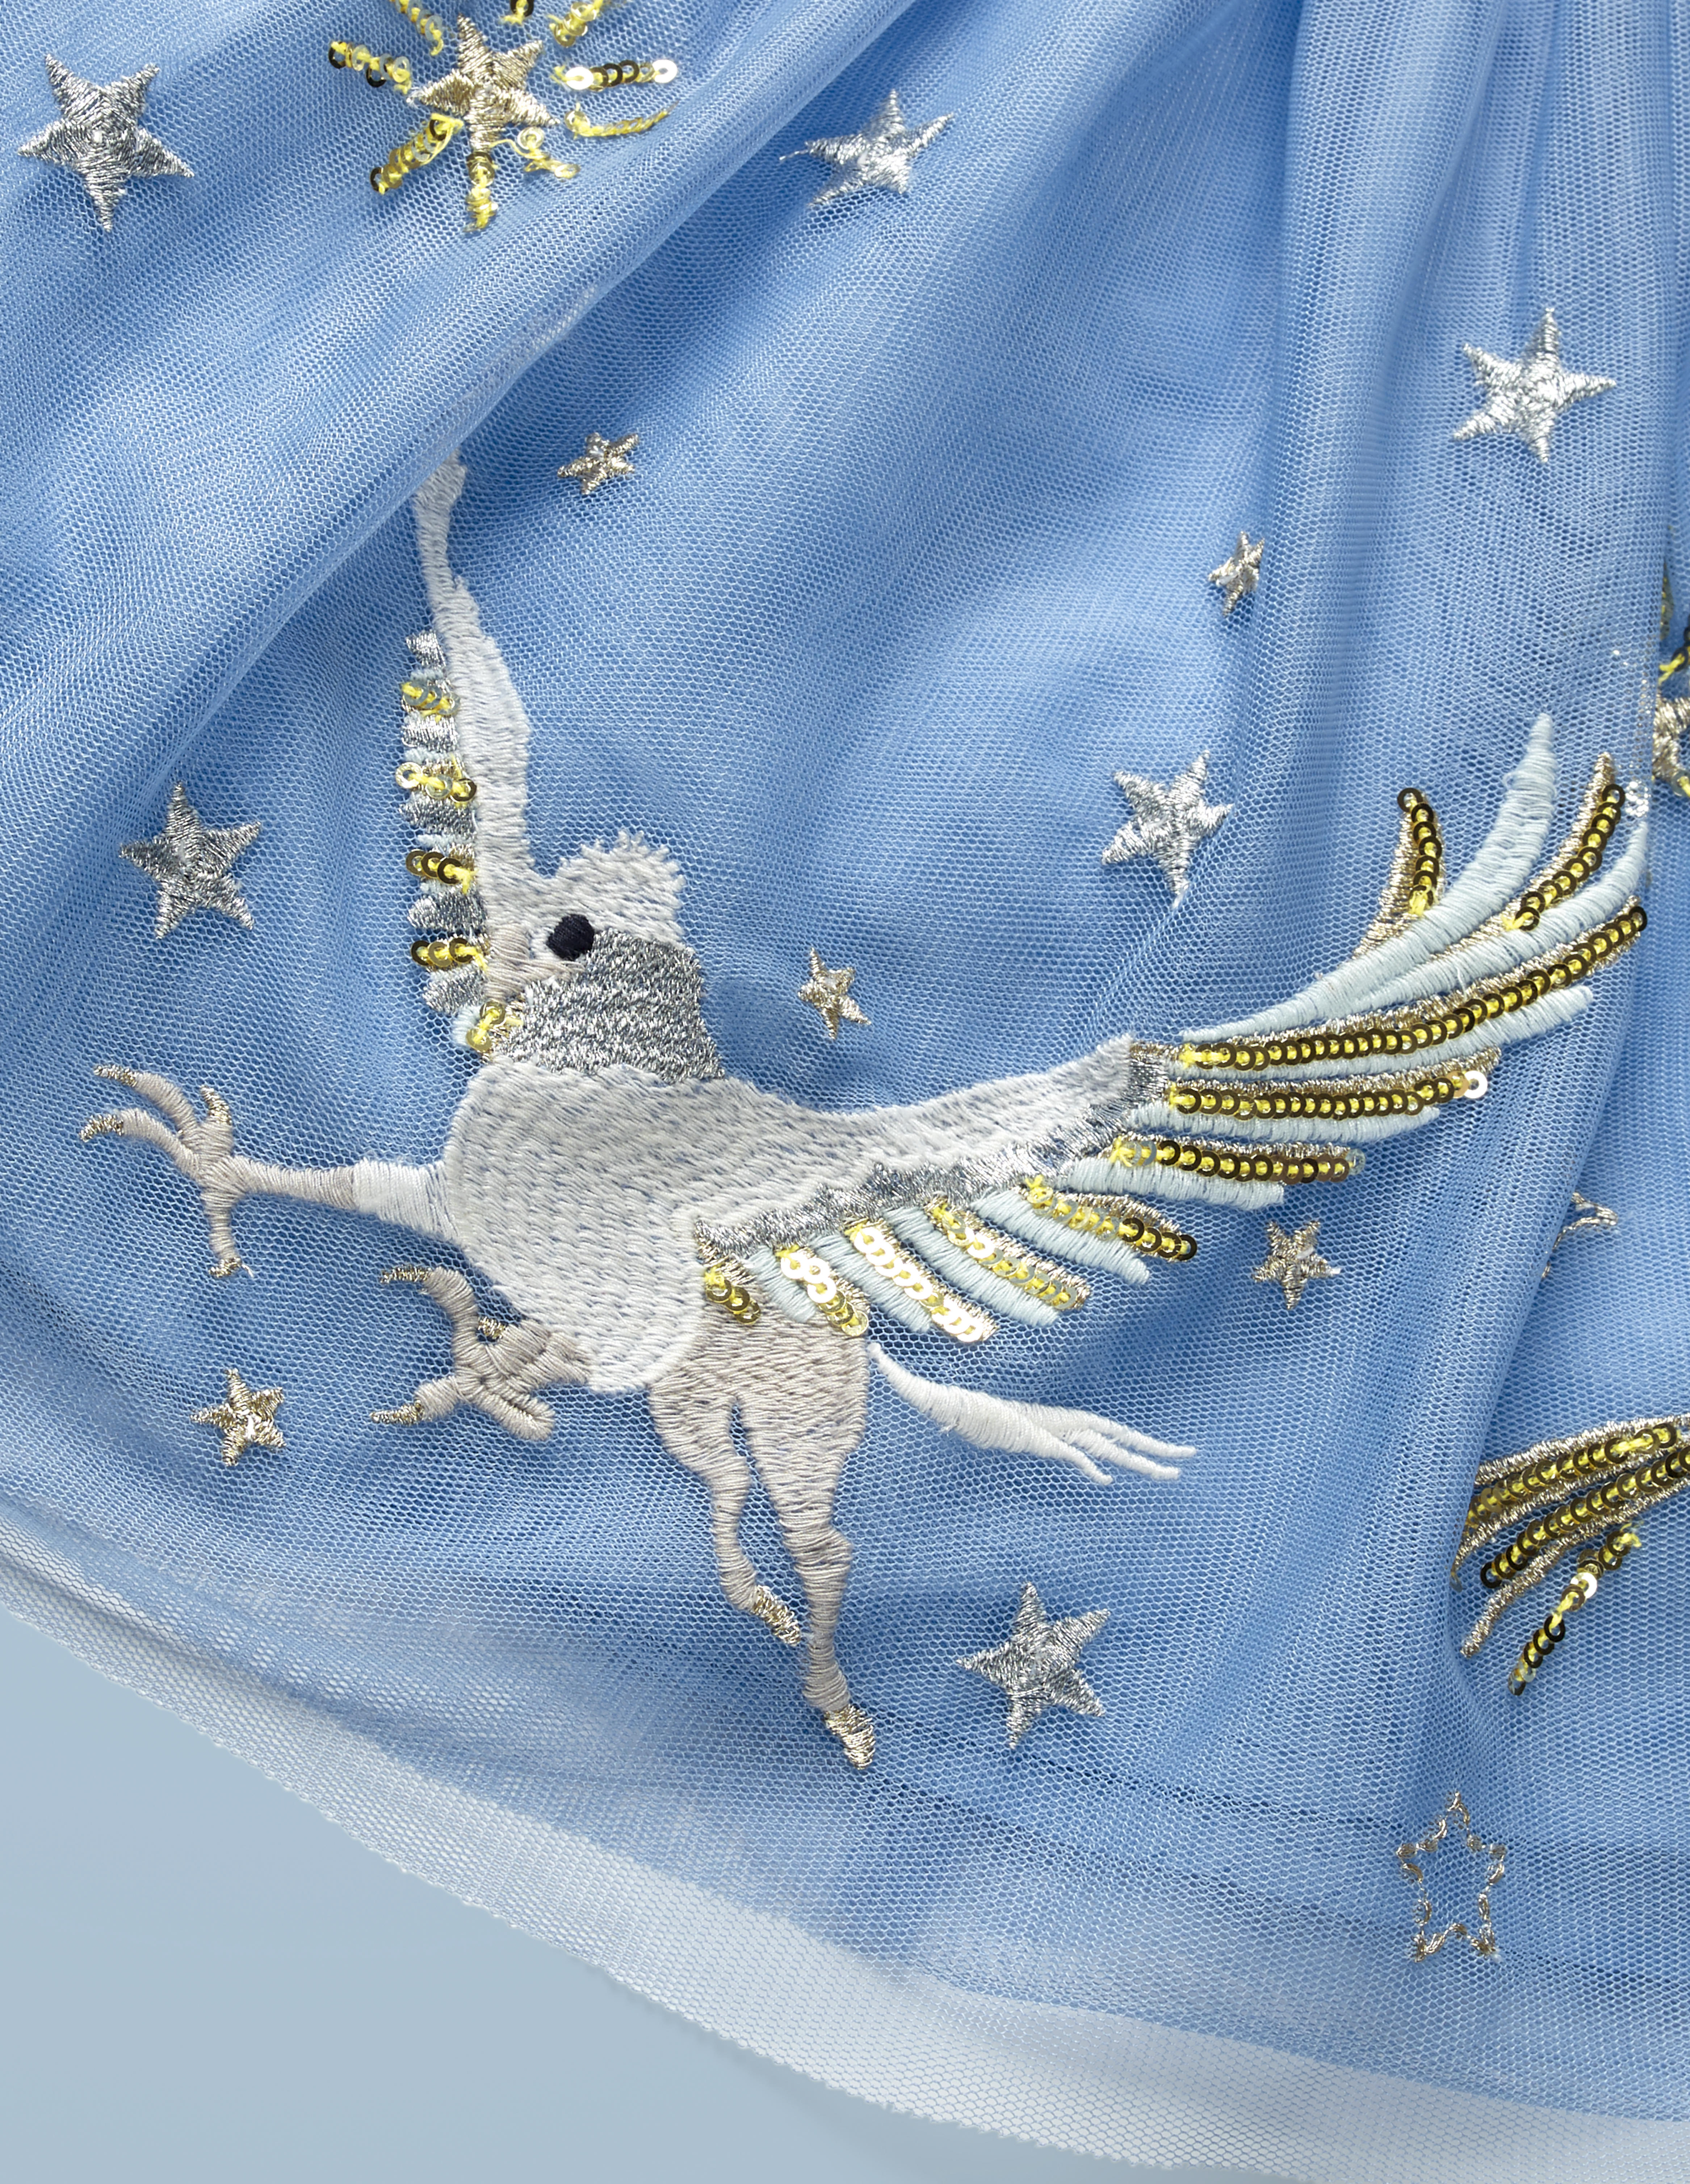 This close-up of the Mini Boden Hippogriff Tulle Skirt in light blue provides a better look at the design: a hippogriff flying among the stars. It retails at £40.